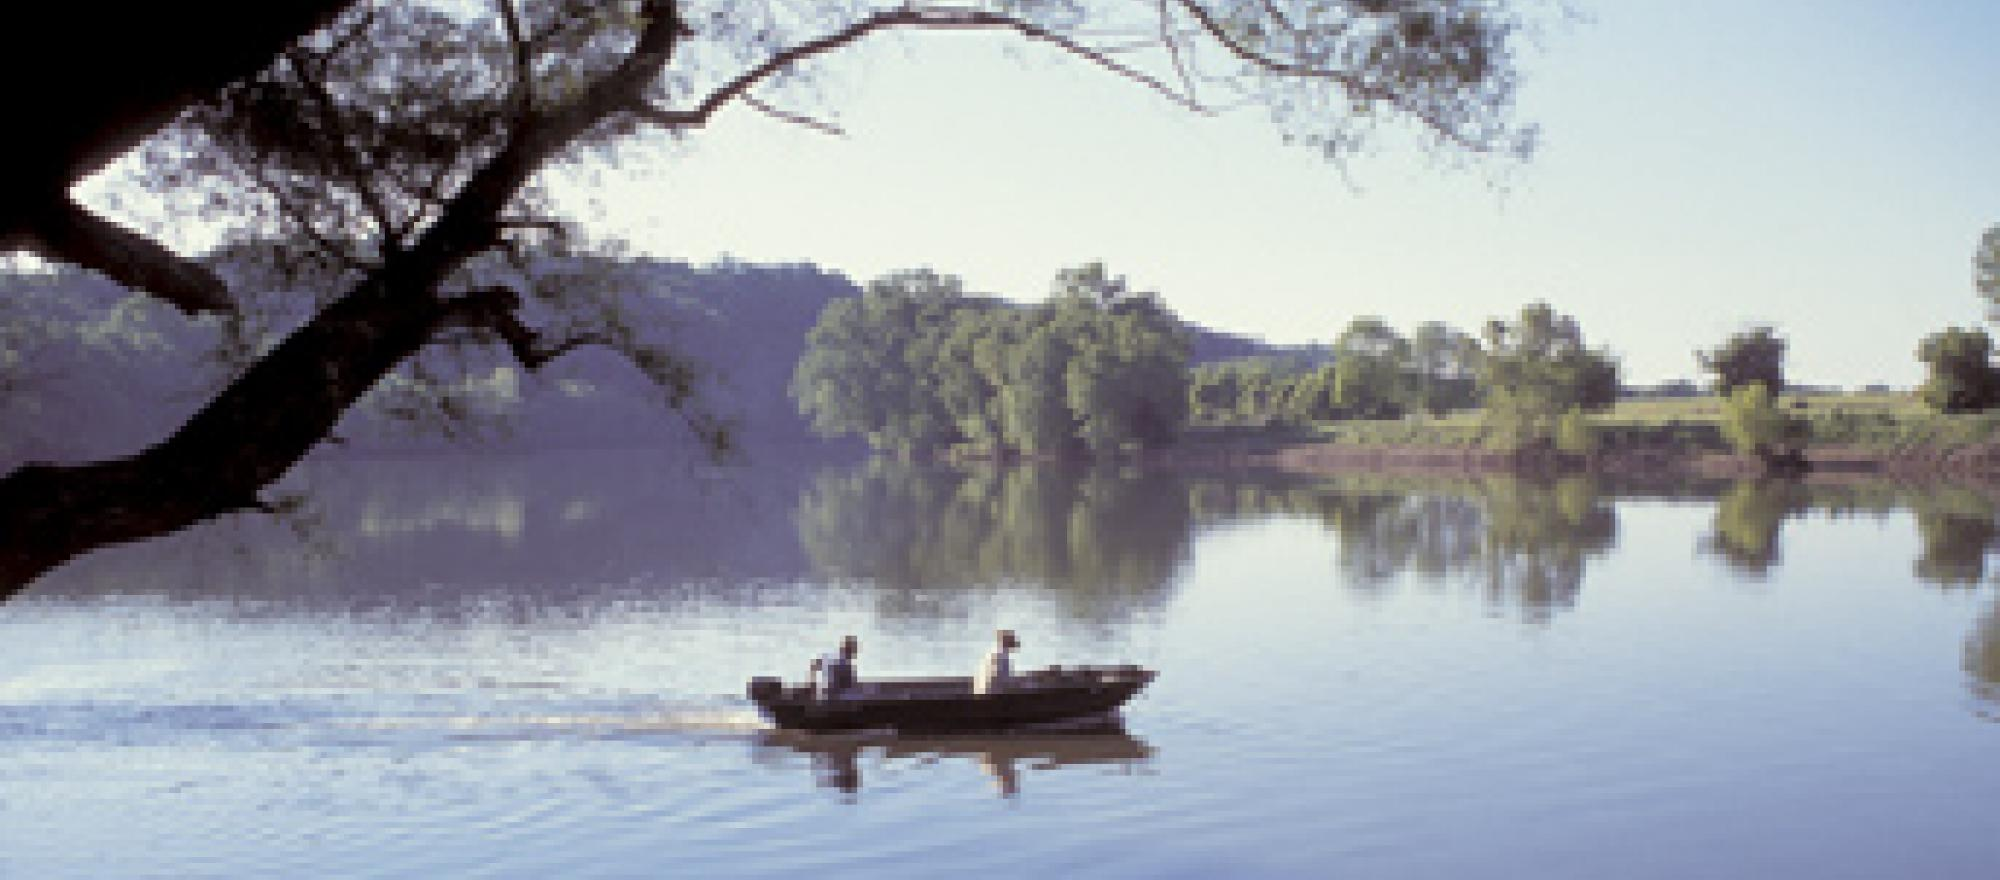 You'll find lots of fishing, canoeing, and kayaking possibilities on the Jame